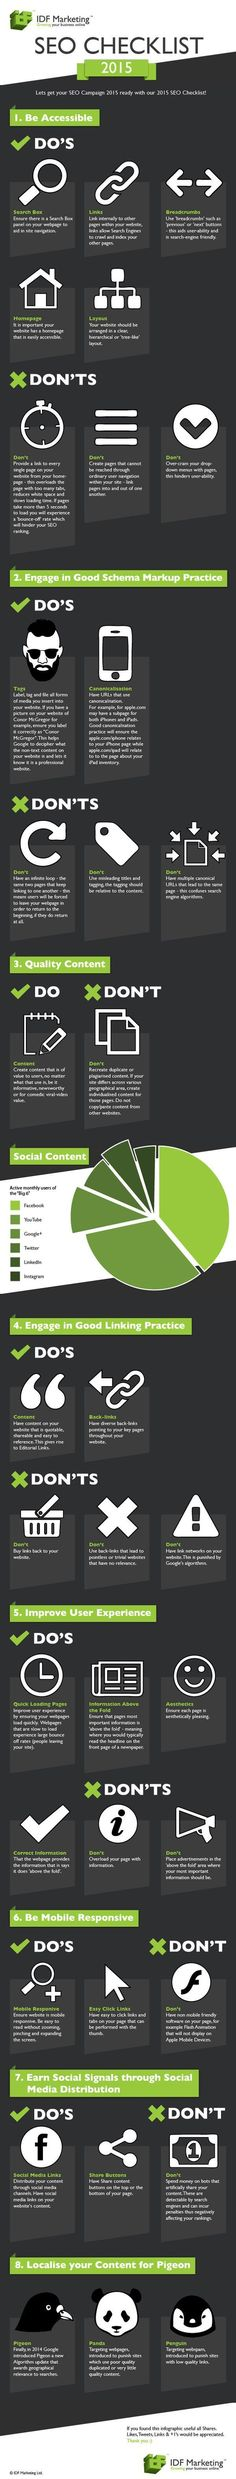 Search Engine Optimization Checklist 2015. This infographic will prove most useful therefore for the coming year and the good practice contained within it are best practice for the SEO industry as it stands today. #searchengineoptimization(seo),